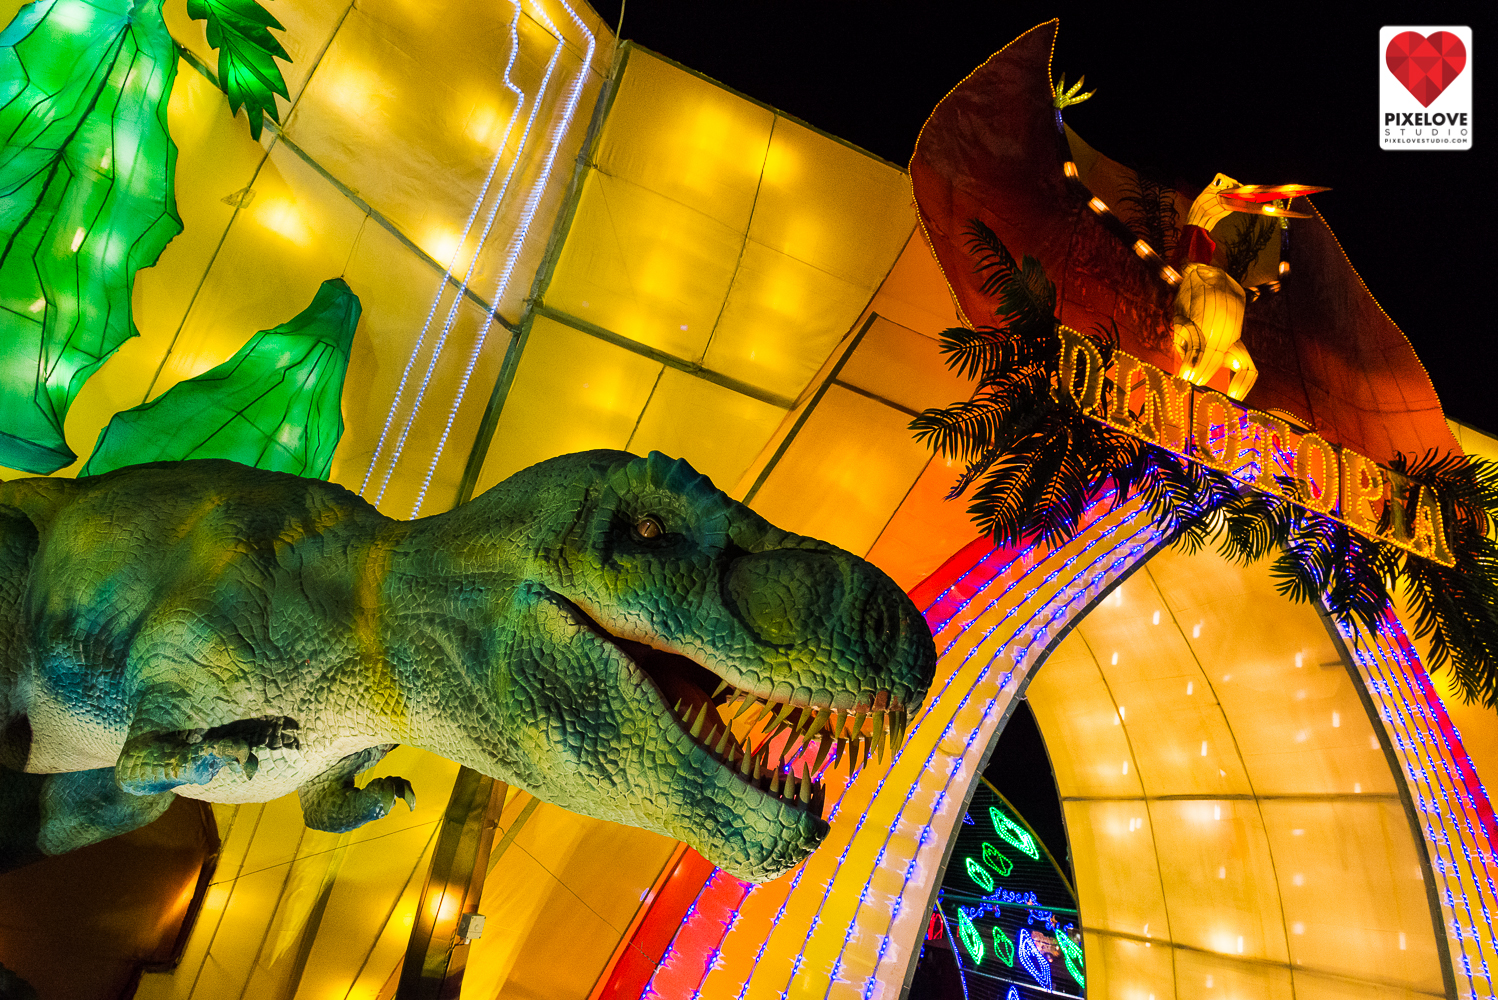 Enjoy Phoenix, Arizona and visit the Phoenix Art Museum, The Lights of the World and escape to teh resort Sheraton Grand at Wild Horse Pass.